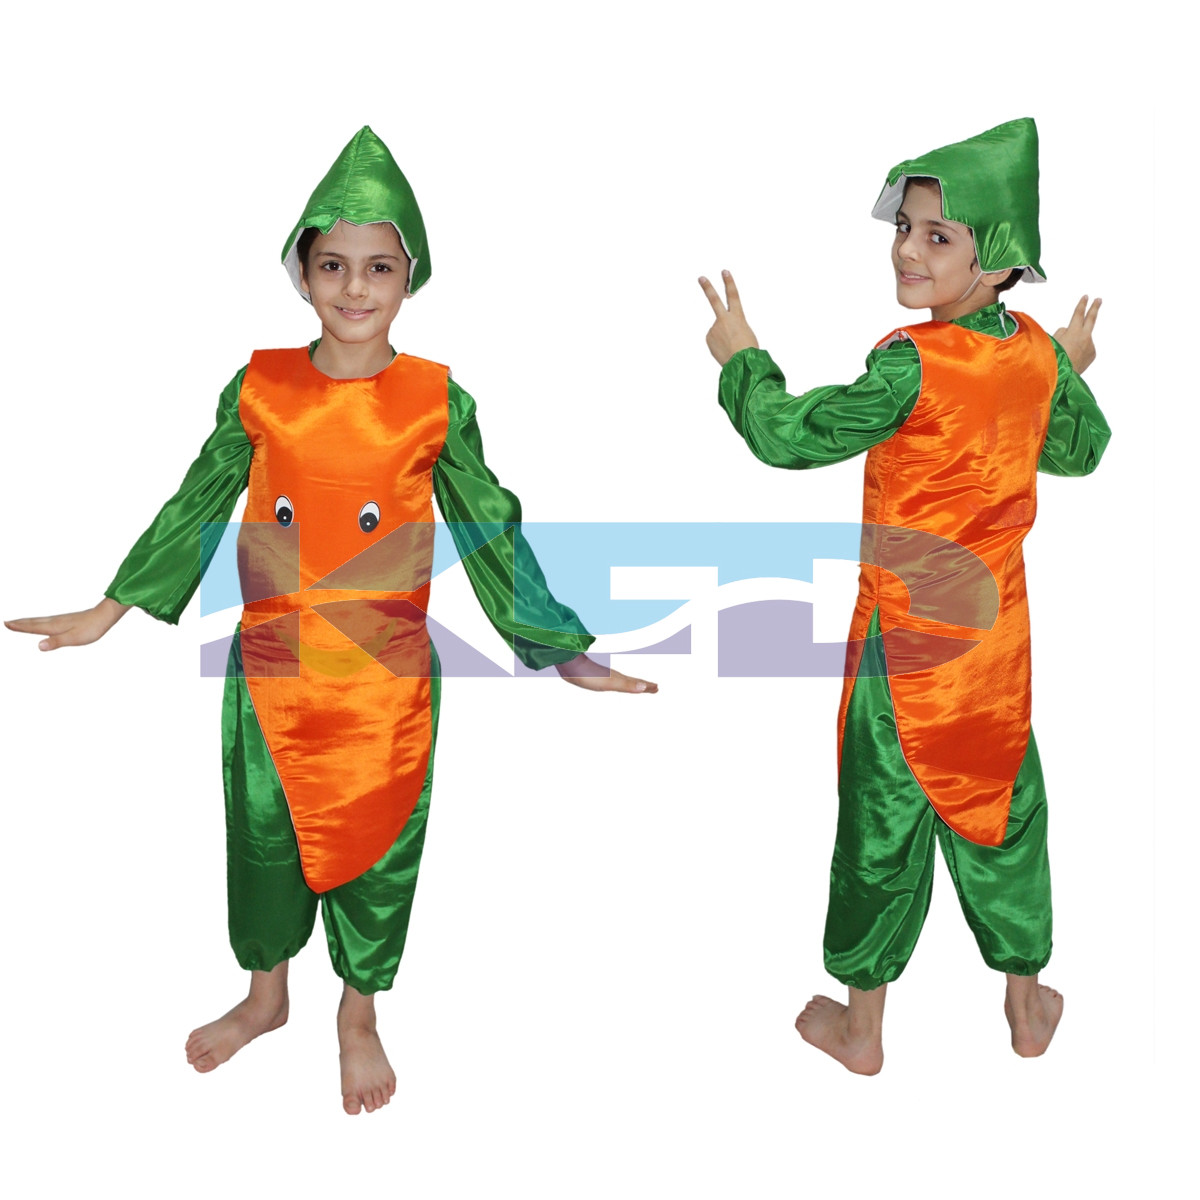 Carrot fancy dress for kids,Fruits Costume for School Annual function/Theme Party/Competition/Stage Shows Dress